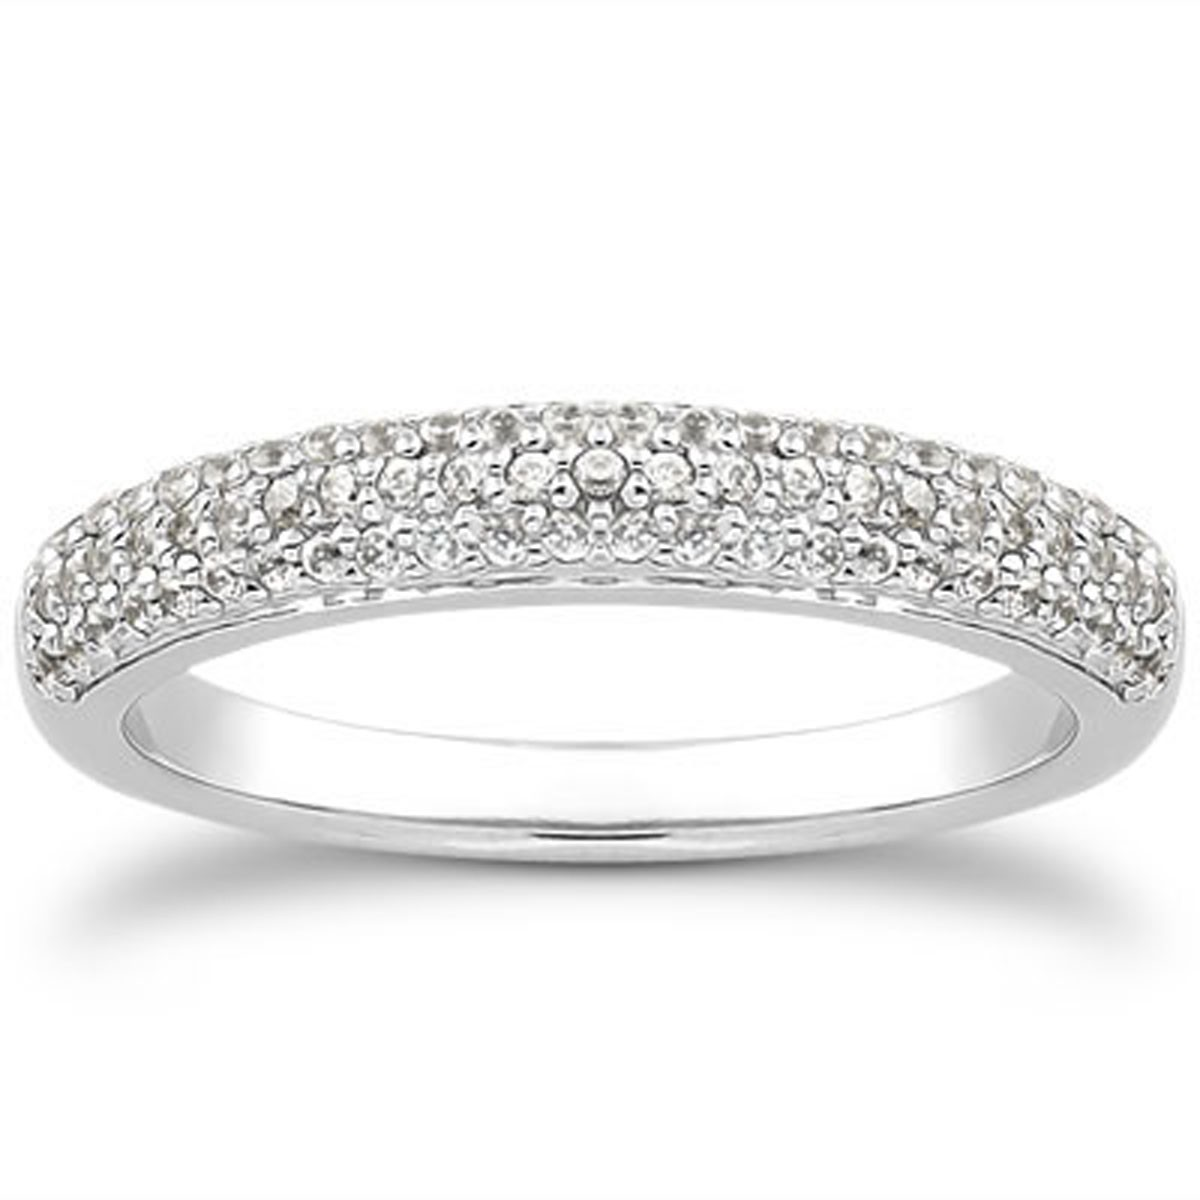 Triple Row Micro Pave Diamond Wedding Ring Band In 14k